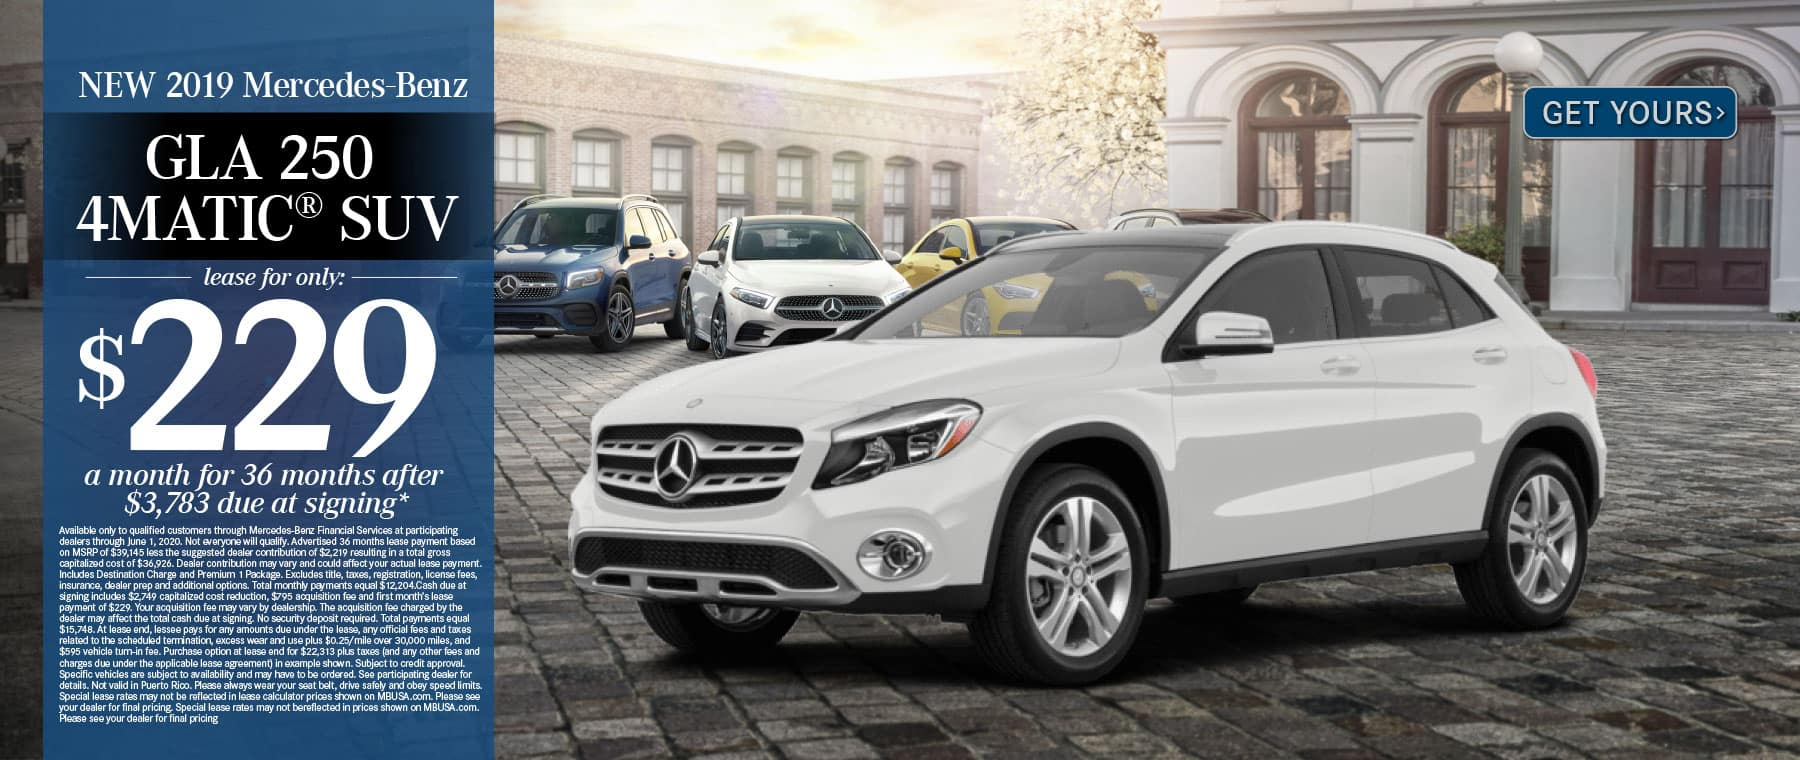 2019 Mercedes-Benz GLA250 $229 a month for 36 months after $3783 due at signing. Get Yours.